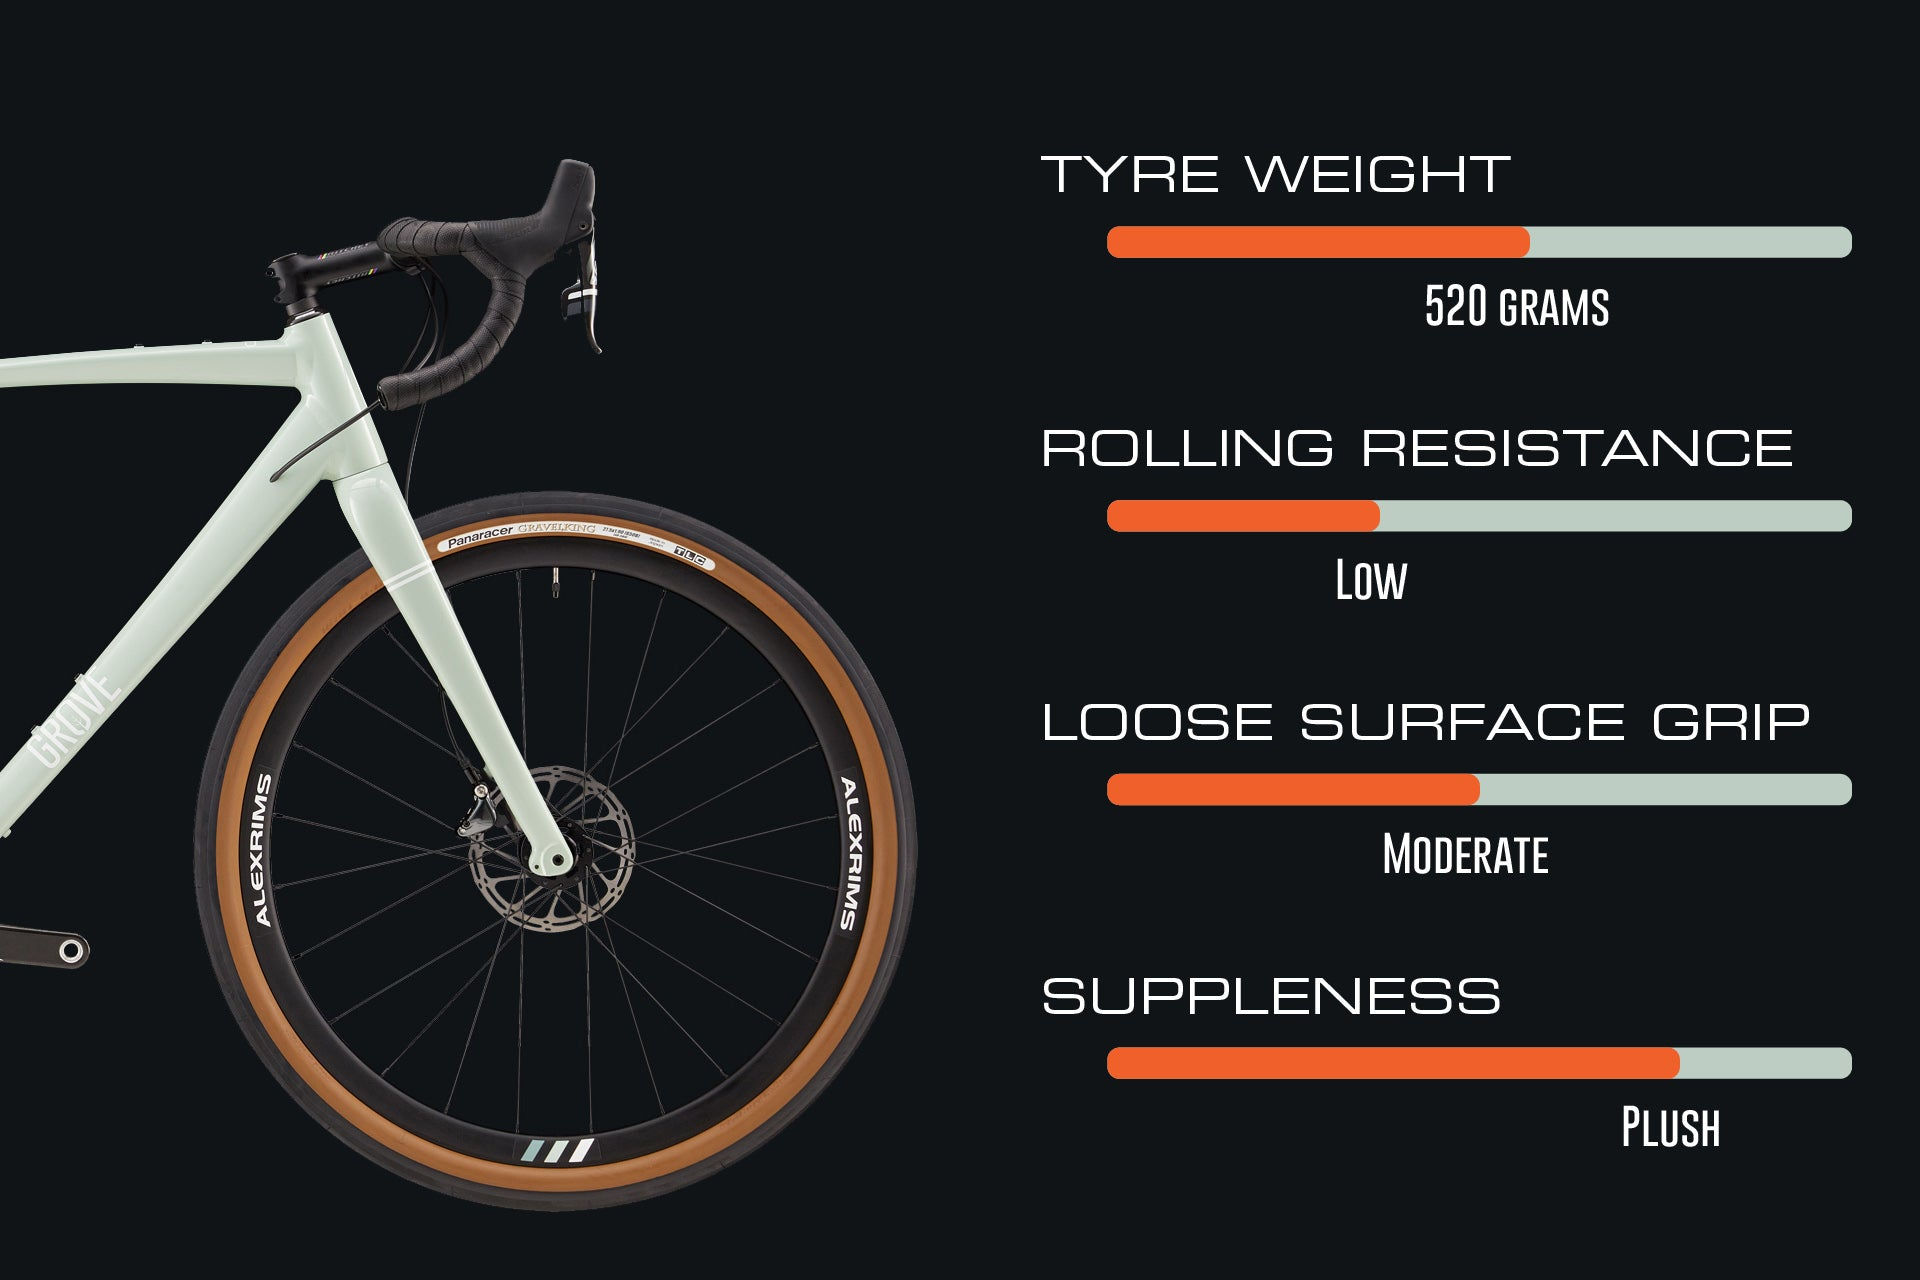 Panaracer gravelking 650Bx48 27.5x1.9 performance features